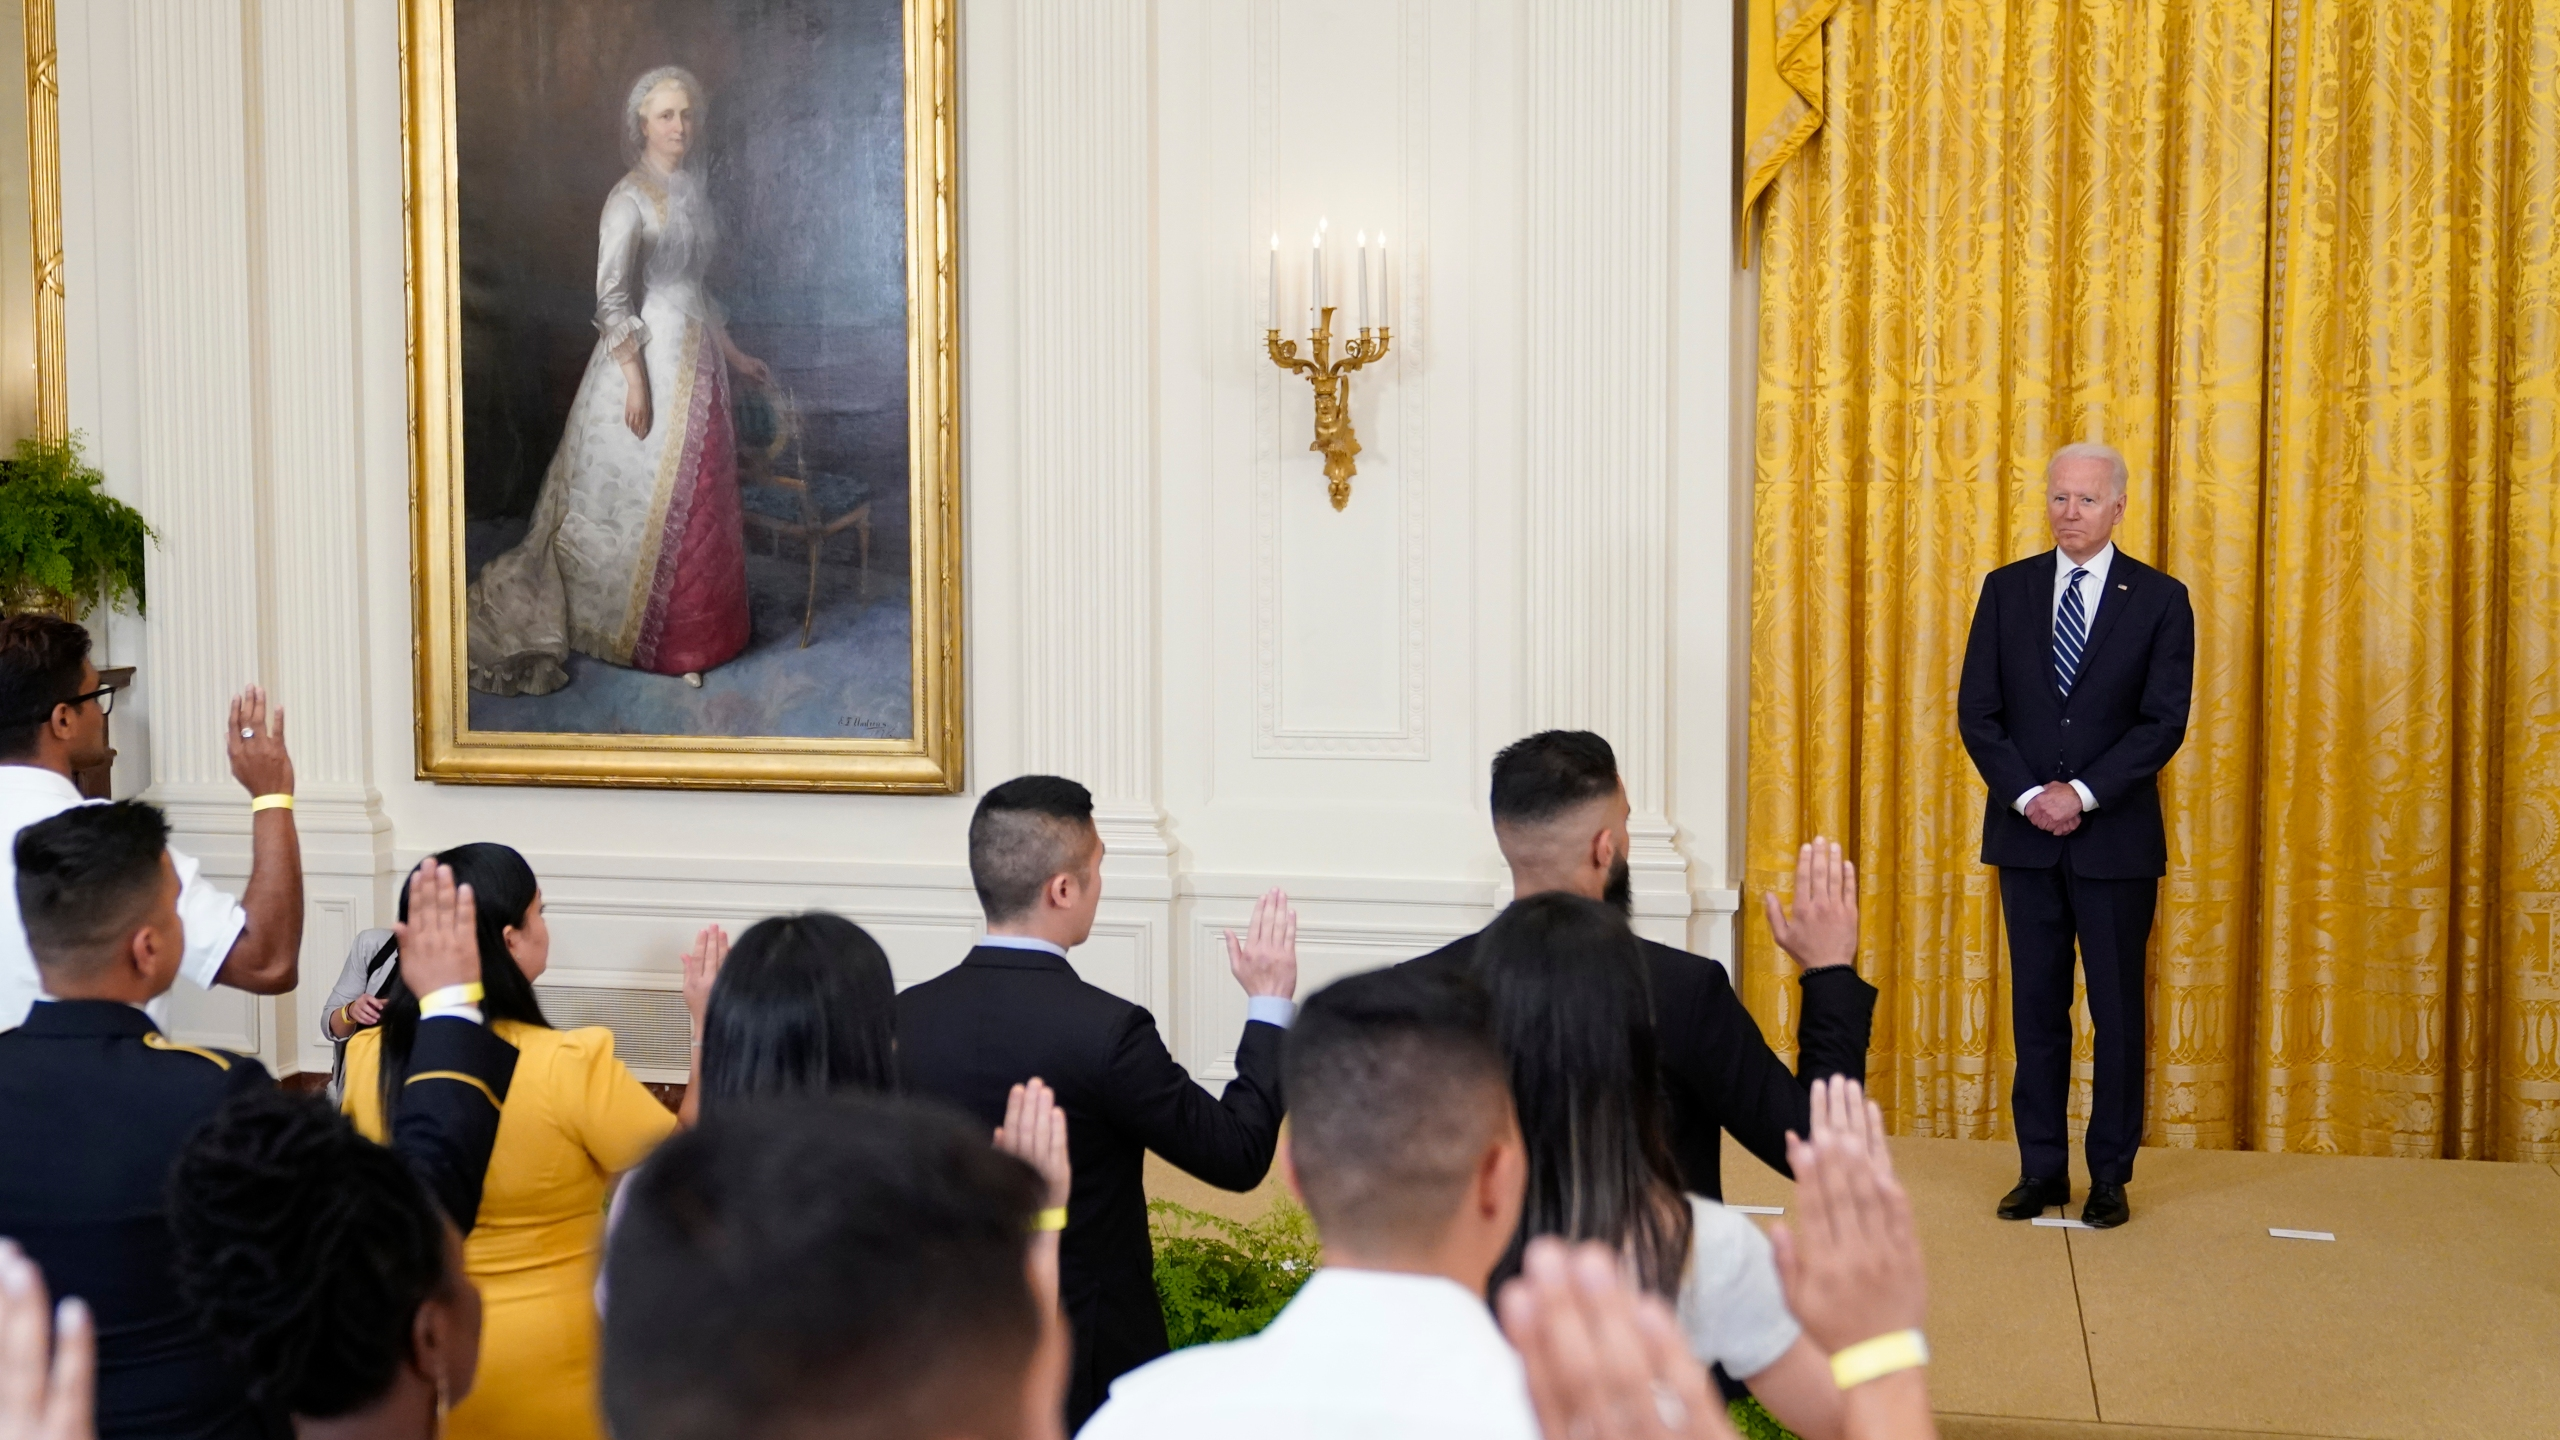 President Joe Biden listens as people take the Oath of Allegiance during a naturalization ceremony in the East Room of the White House, Friday, July 2, 2021, in Washington. (AP Photo/Patrick Semansky)